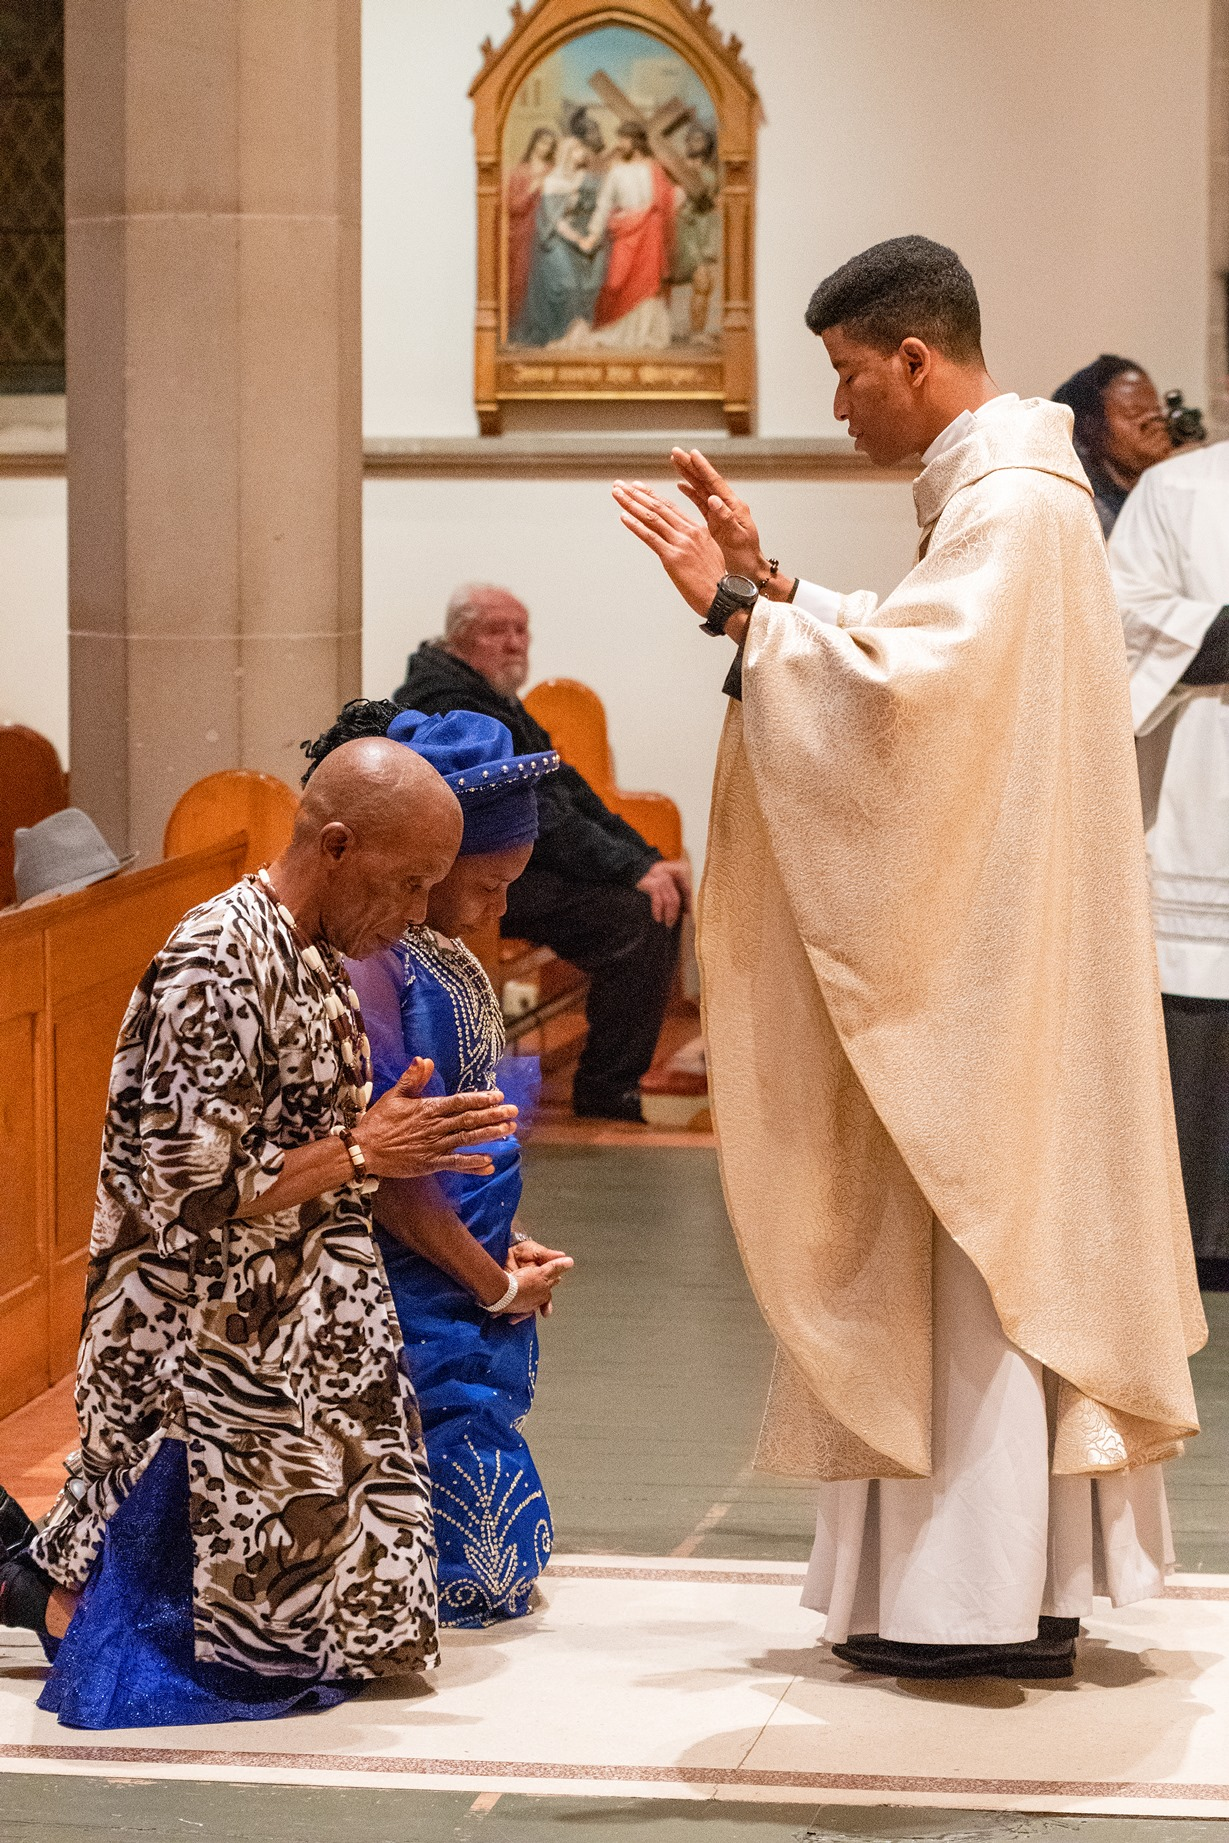 Fr Fidelis Udousoro gives his first blessing to his parents after his ordination at St Mary's Cathedral in the Hobart Archdiocese.